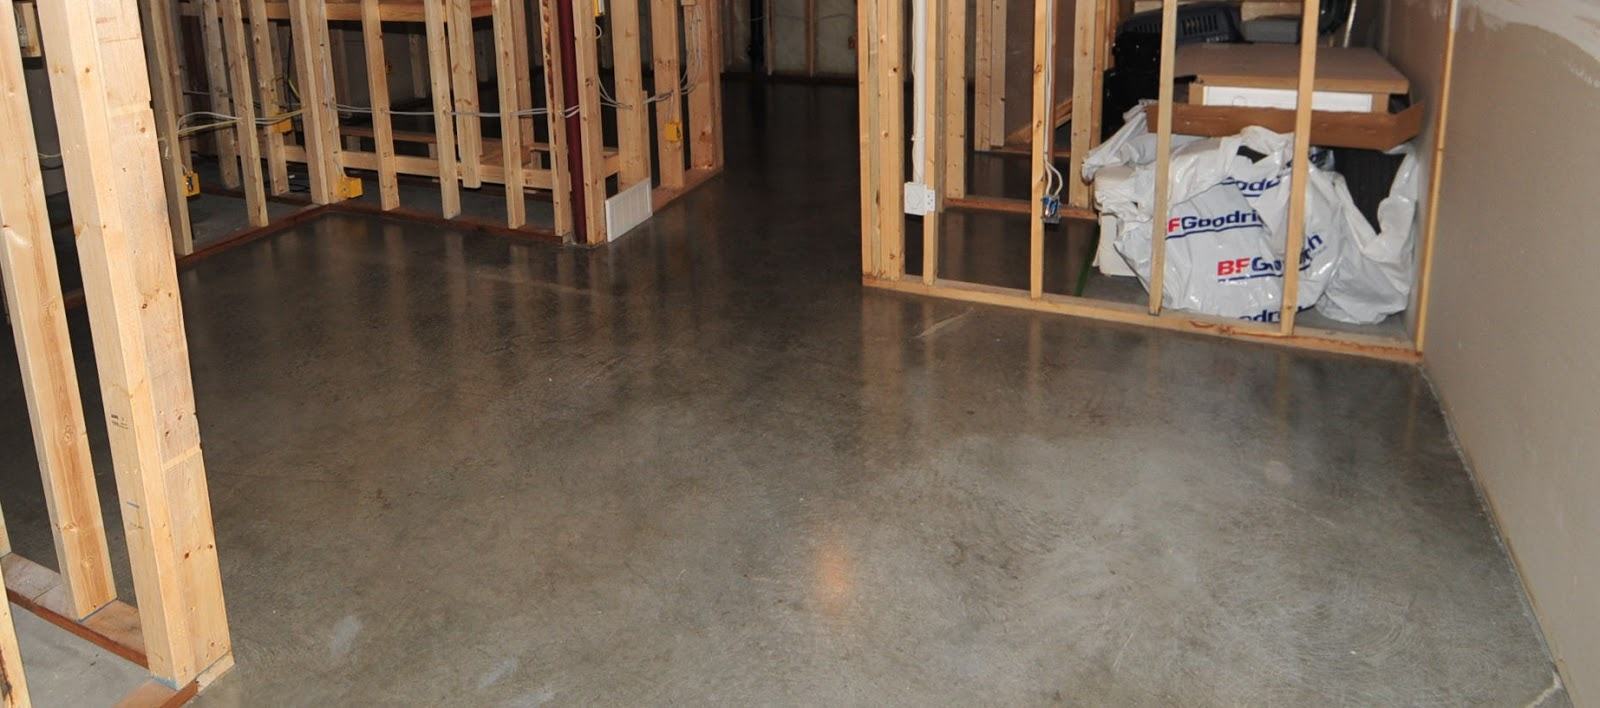 and modern basement concrete floors we are specialists at finishing